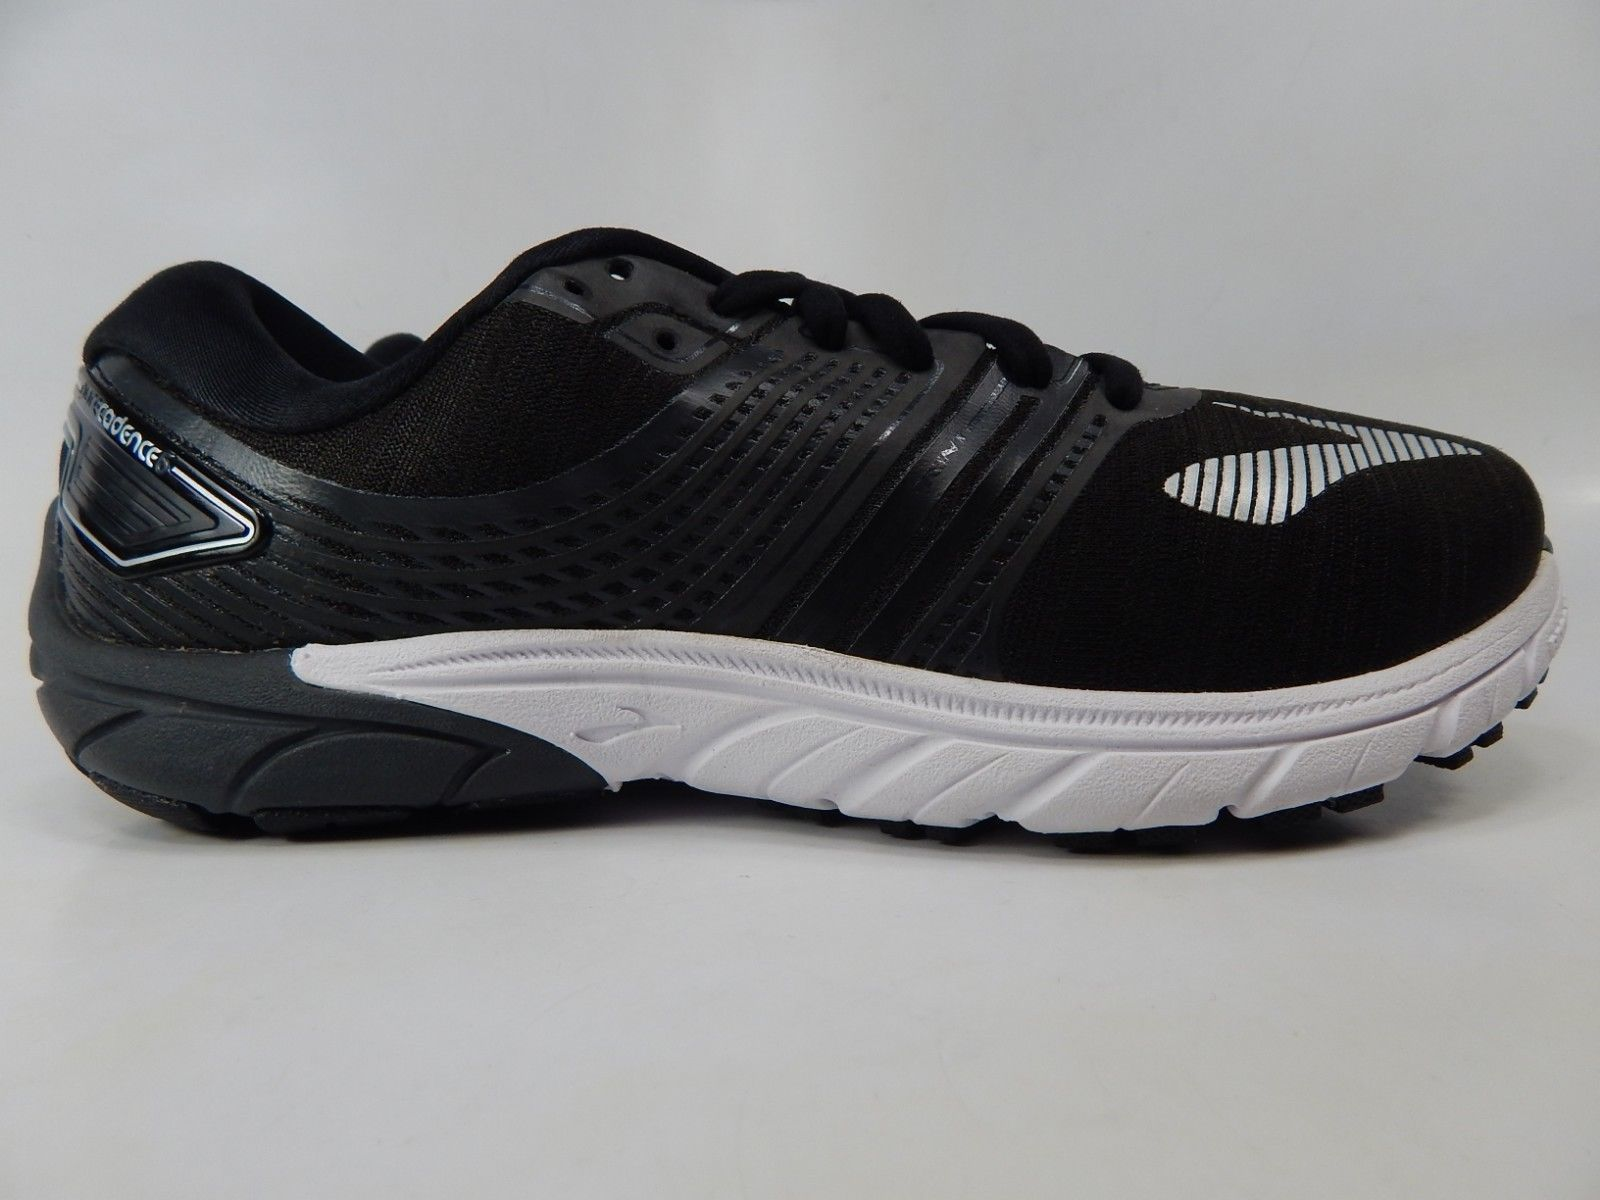 d8de907bf62 Brooks Pure Cadence 6 Size US 7.5 M (D) EU 40.5 Men s Running ...